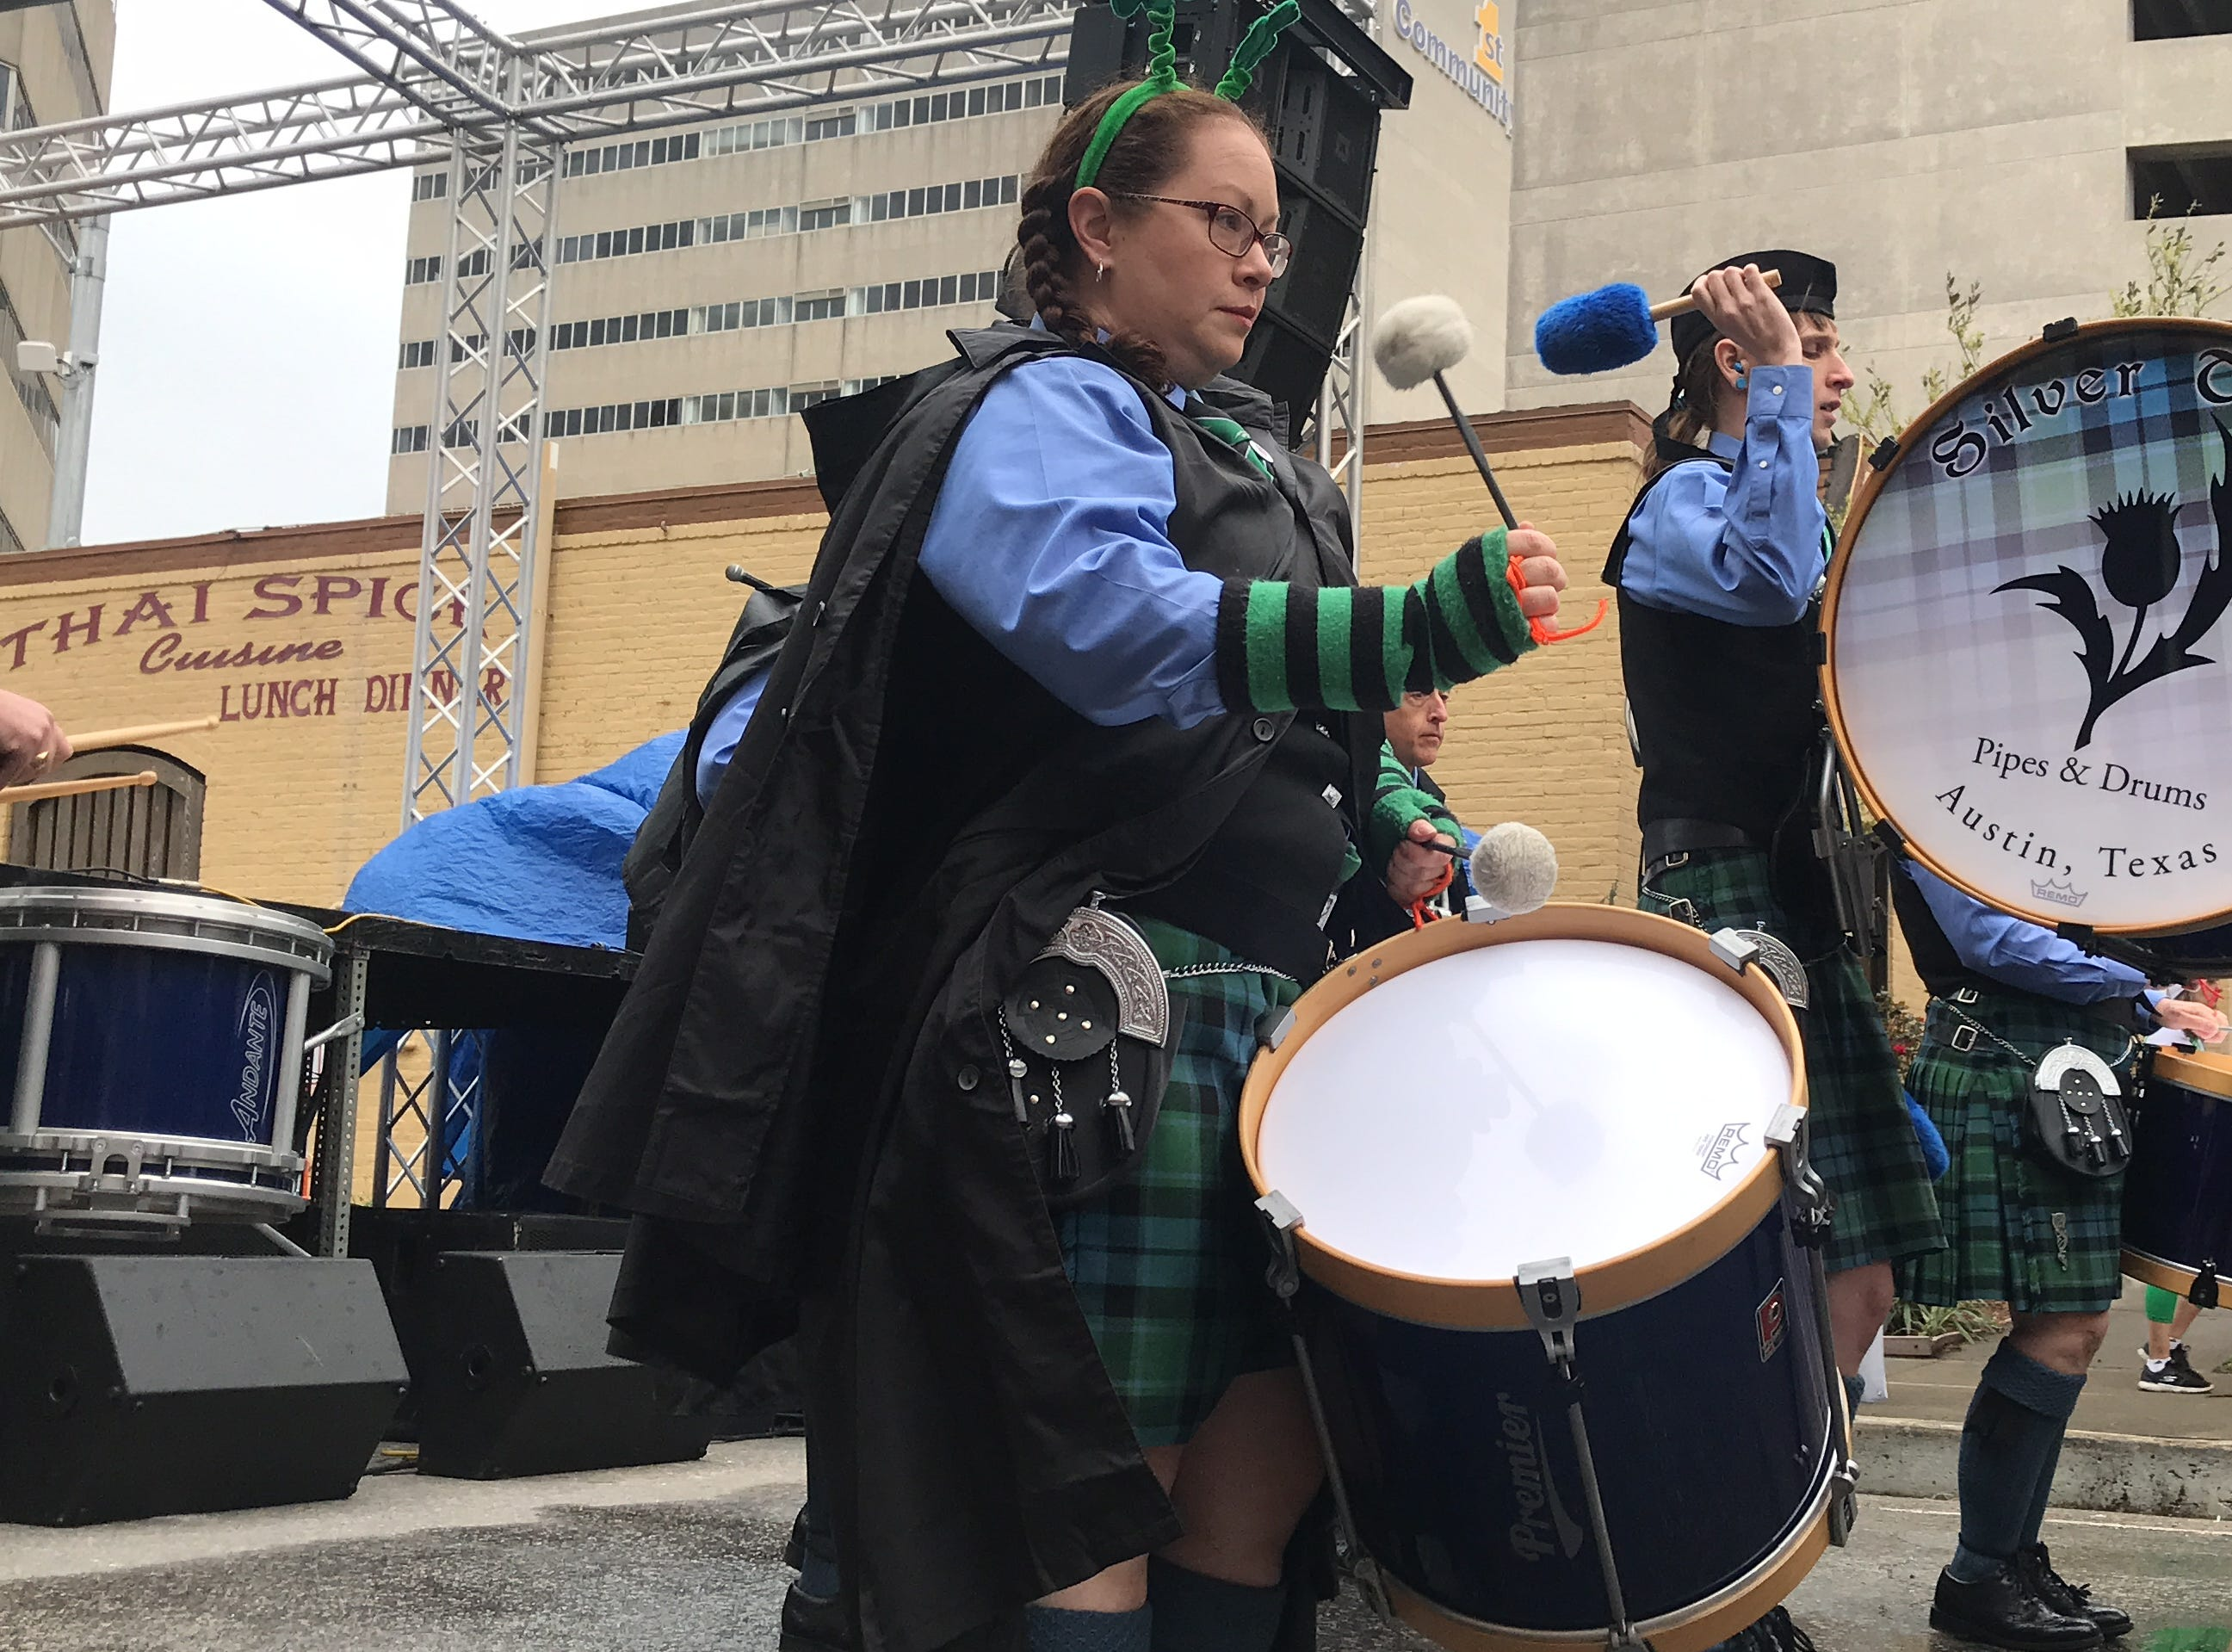 Silver Thistle Pipes and Drums perform traditional Celtic tunes at the 8th annual St. Paddy's Festival in downtown Corpus Christi Saturday, March 16, 2019.